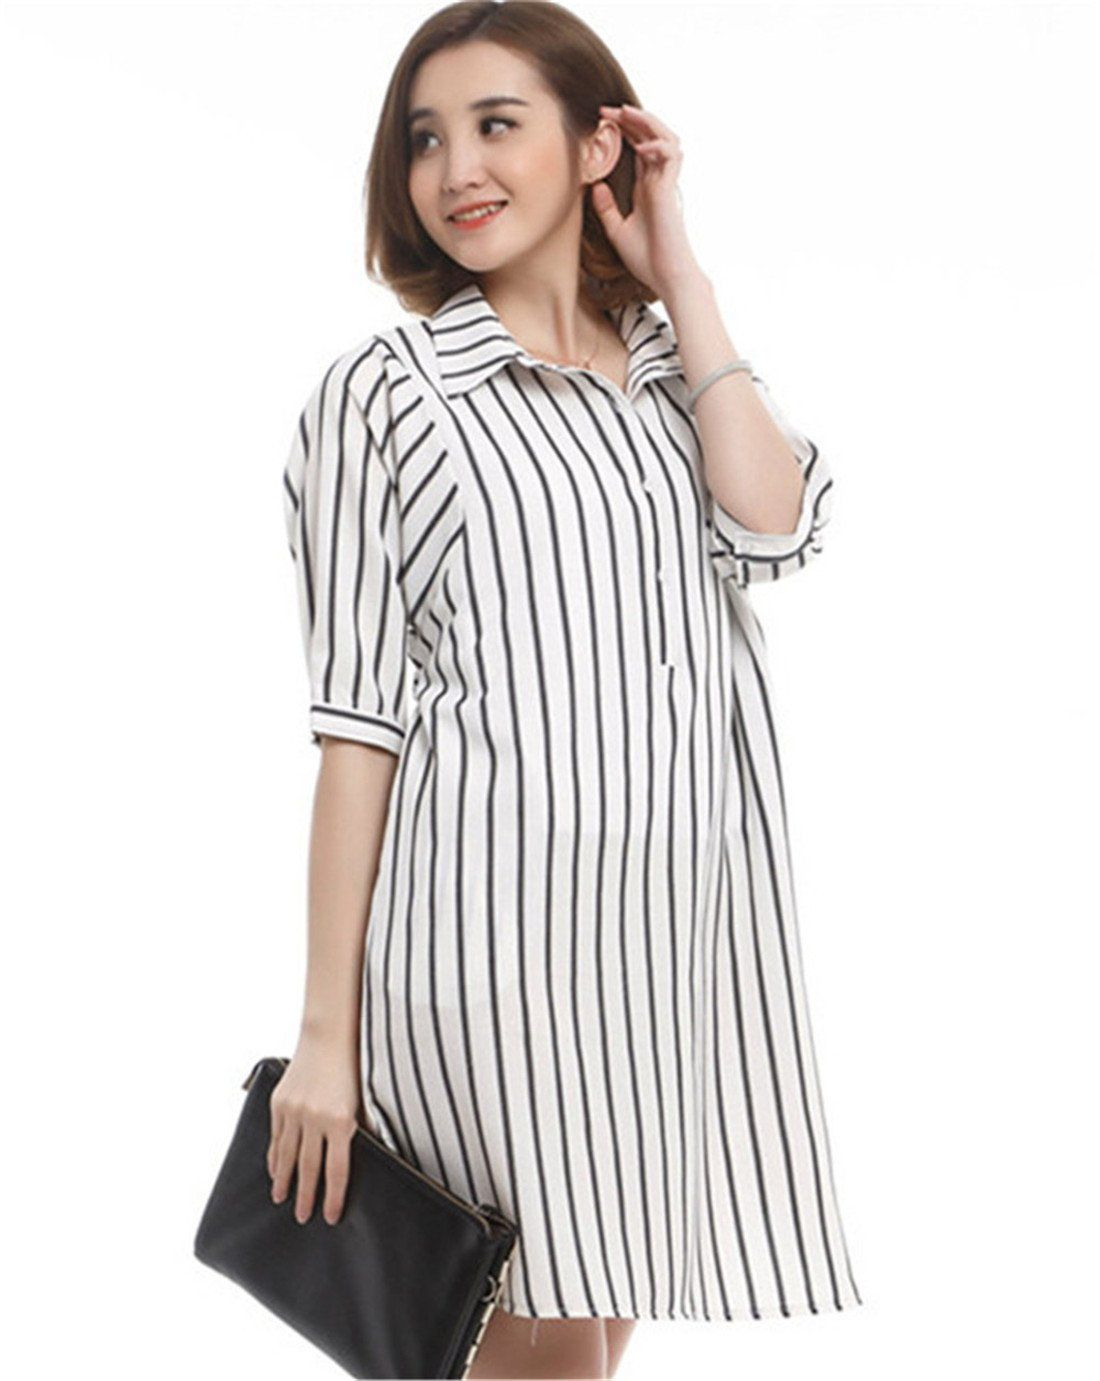 55e4a2e39b63 Maternity Dresses - Summer Breastfeeding Nursing Tshirt Dress Pregnant  Clothes Stripe White    Much more info can be located at the picture link.